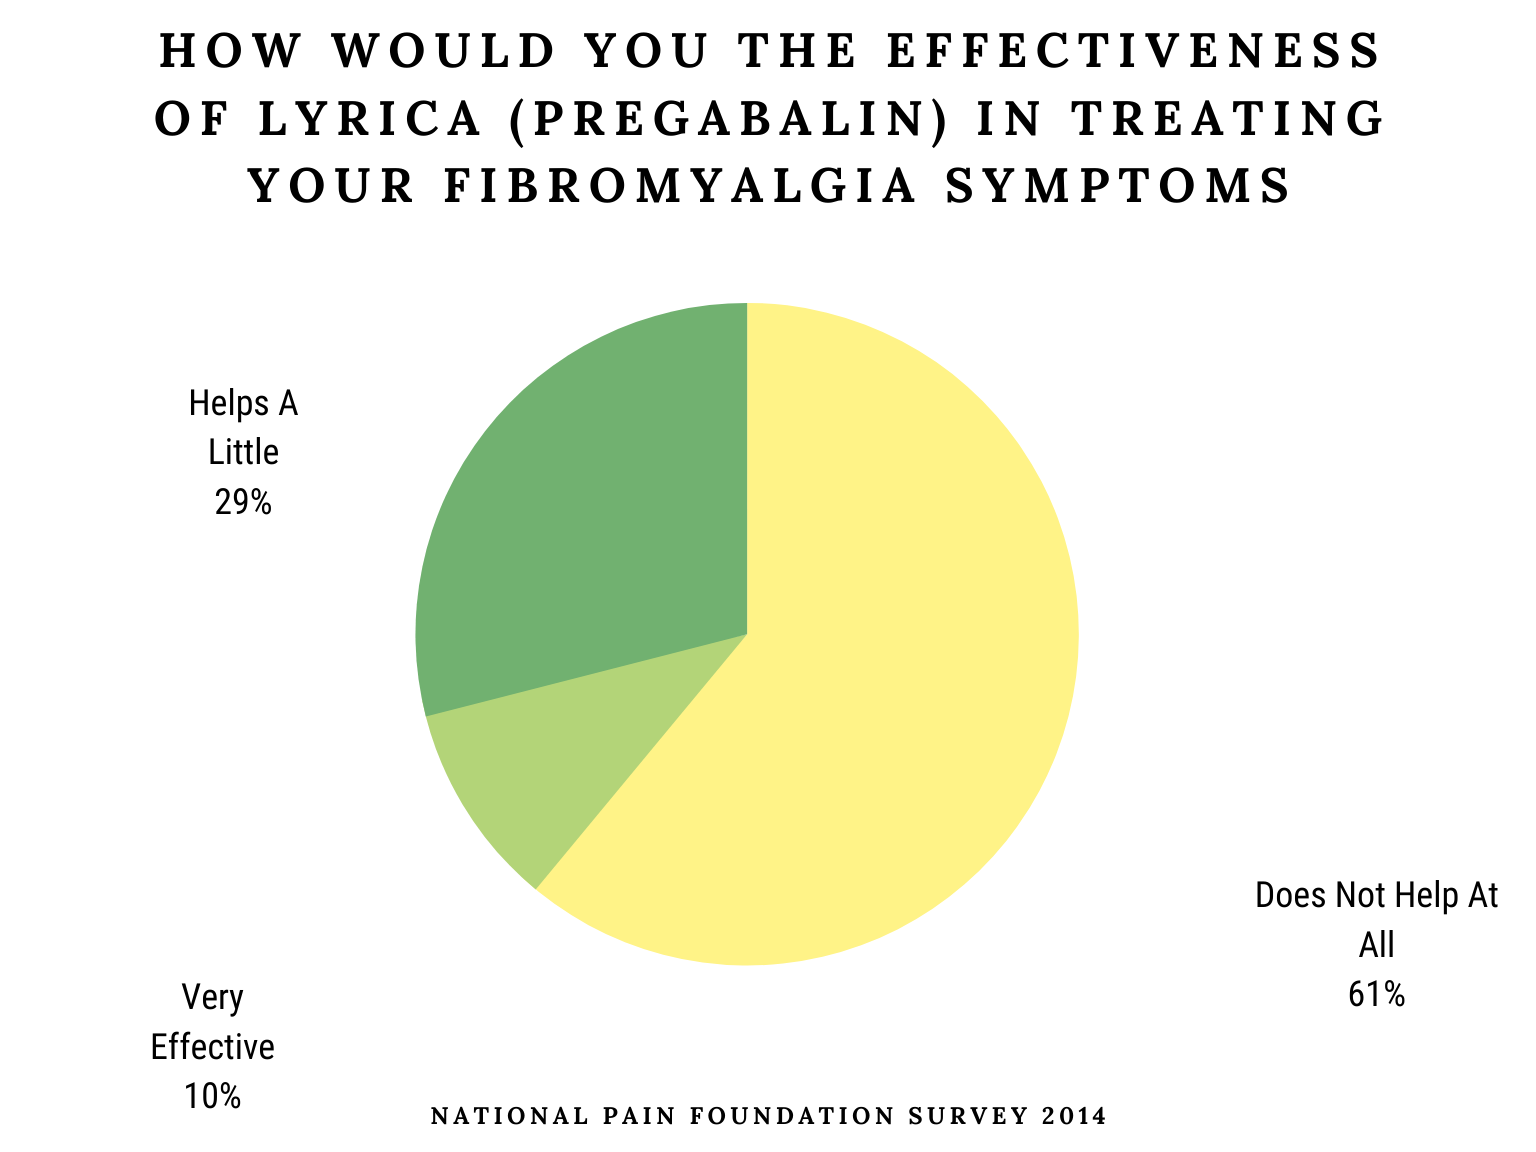 How Would You The Effectiveness Of Lyrica (Pregabalin) In Treating Your Fibromyalgia Symptoms